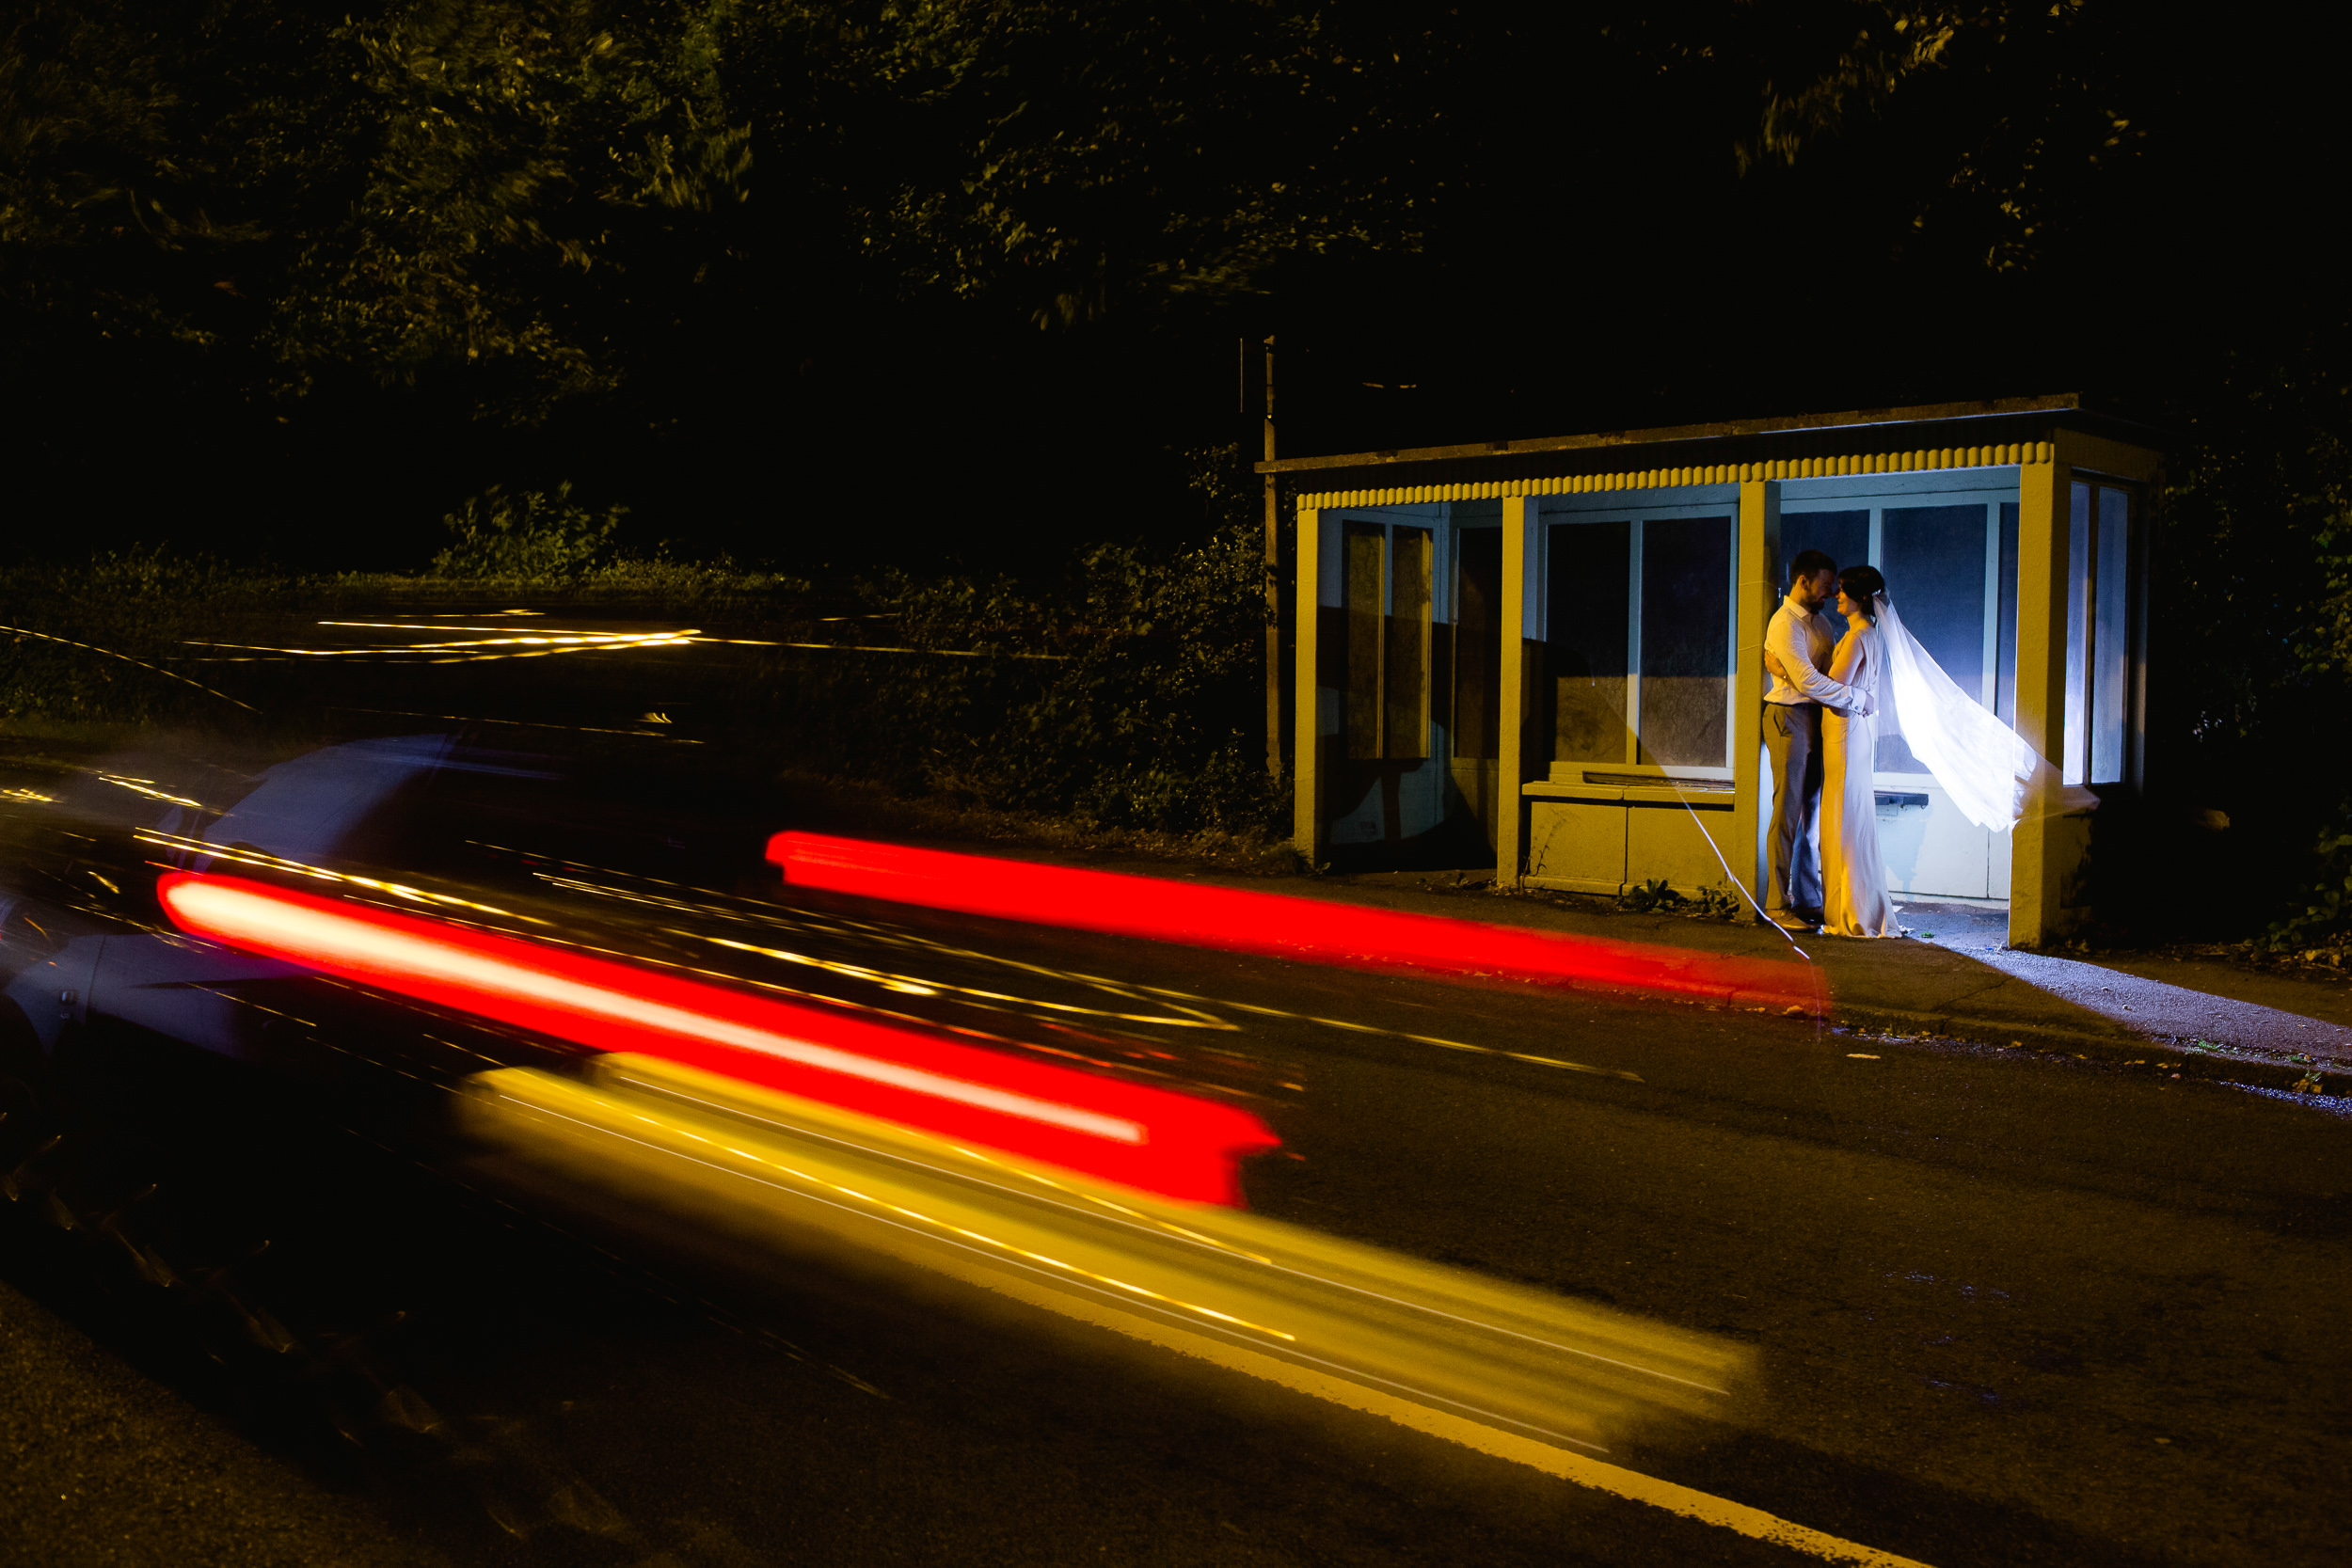 Lickey hills night time pictures - bride and groom in a bus top - Lickey hills wedding